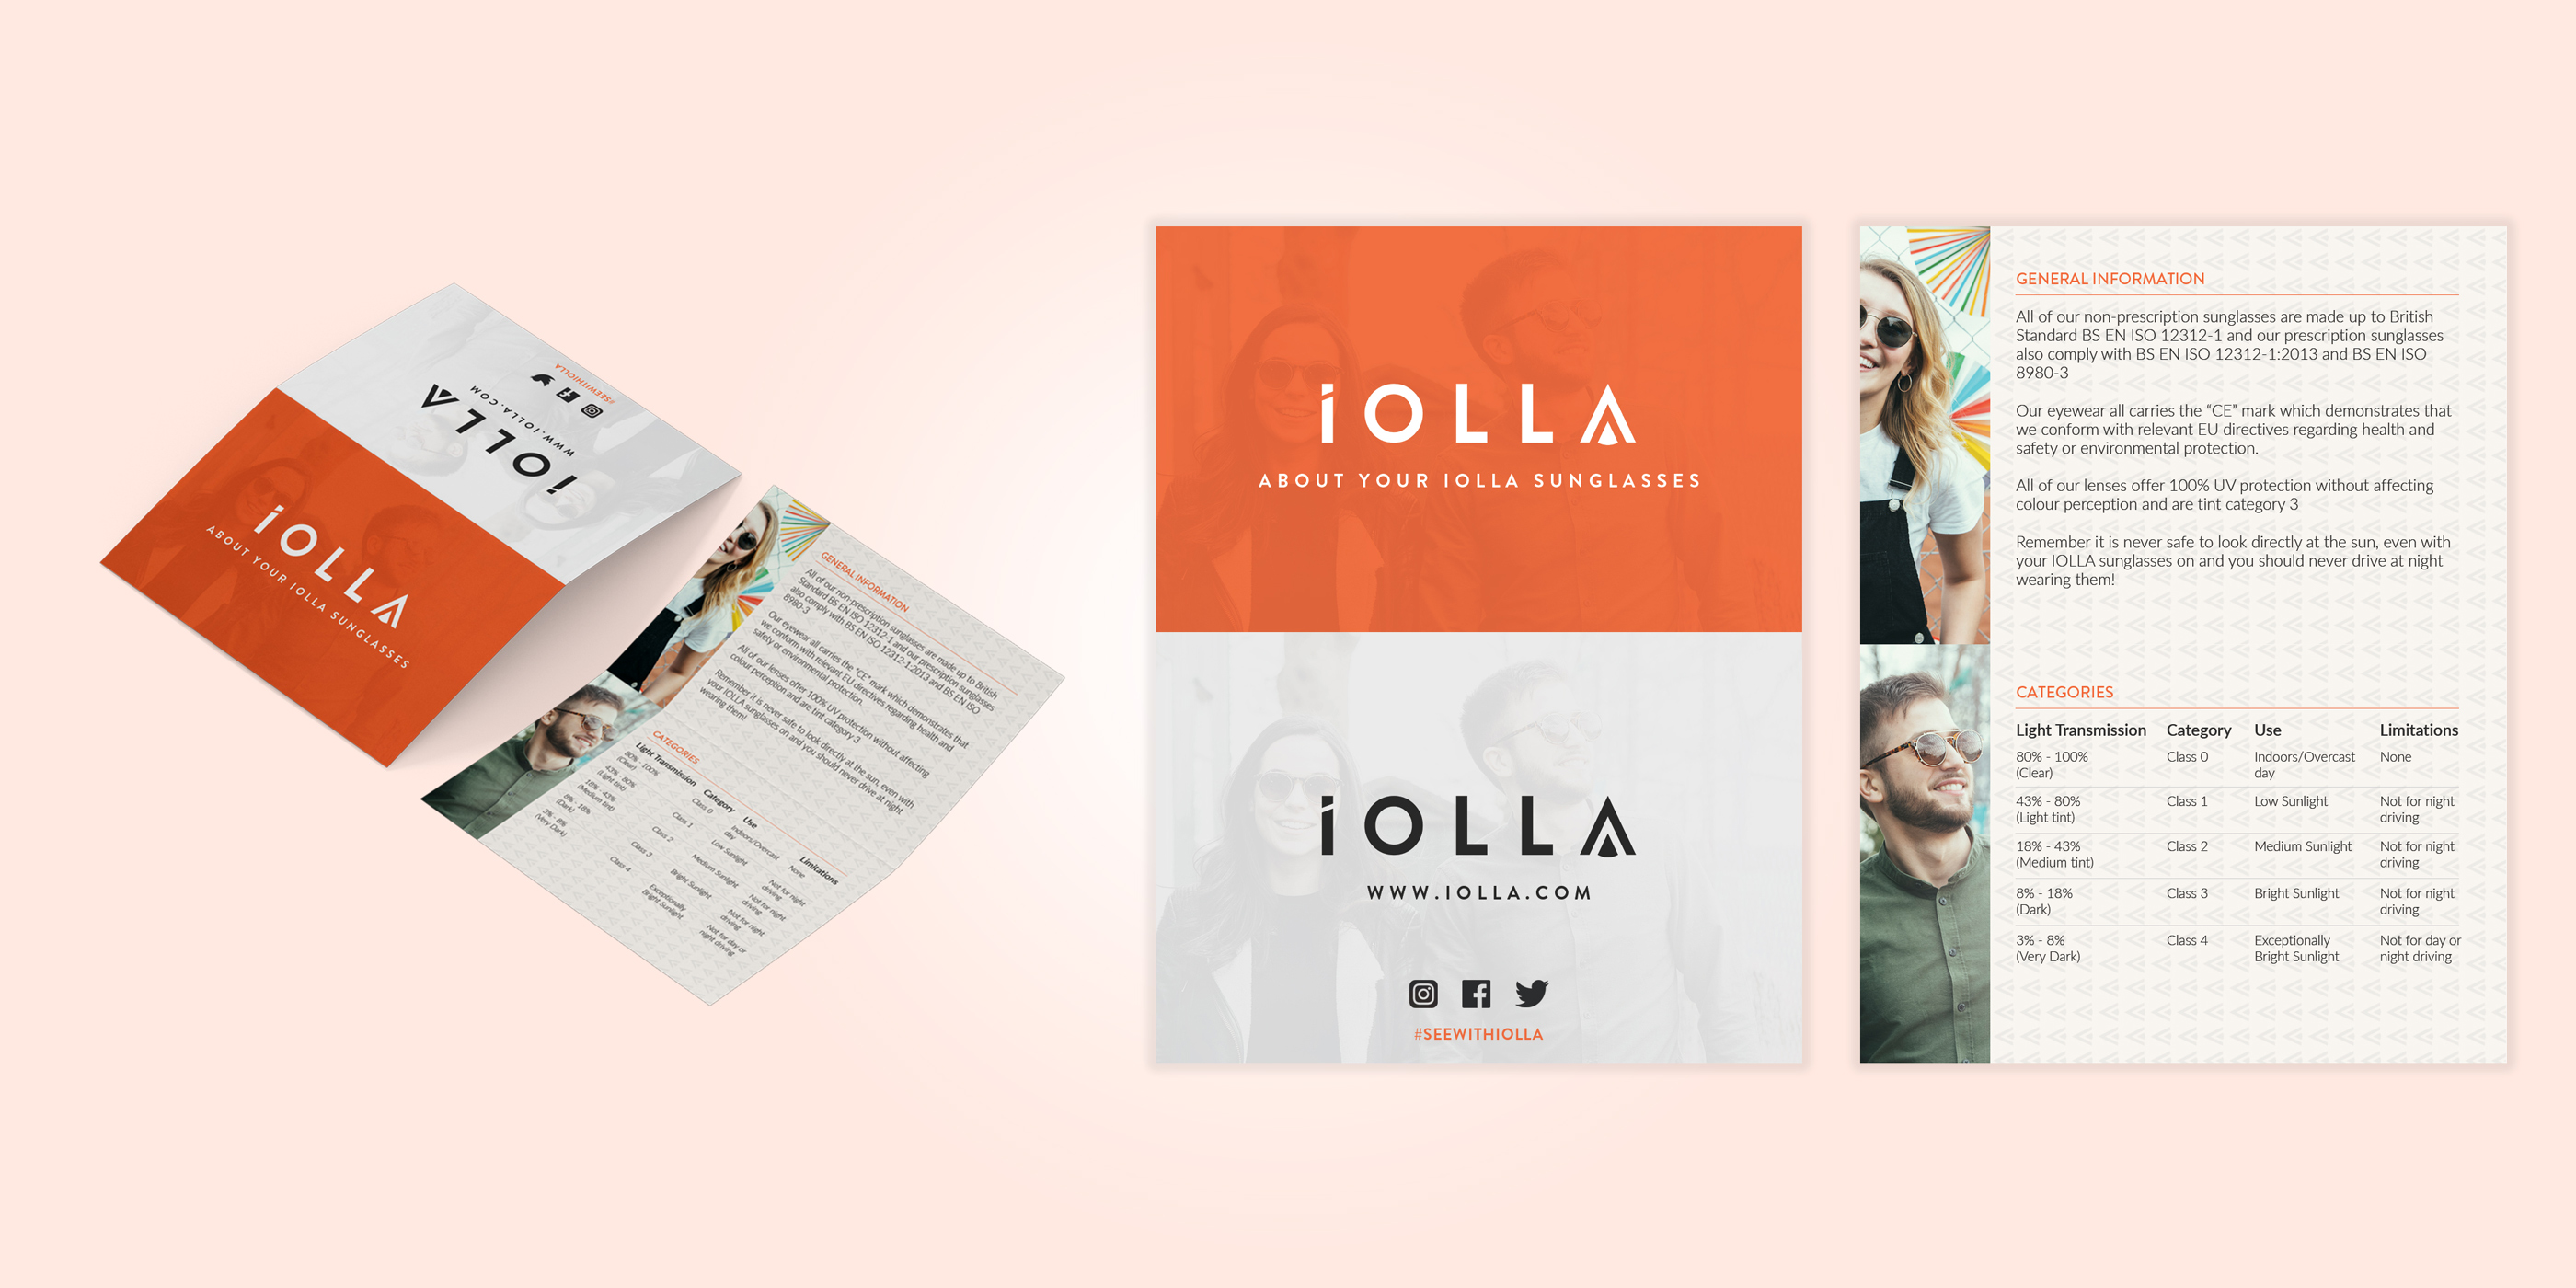 IOLLACareguide_Mockup_Full_Revise